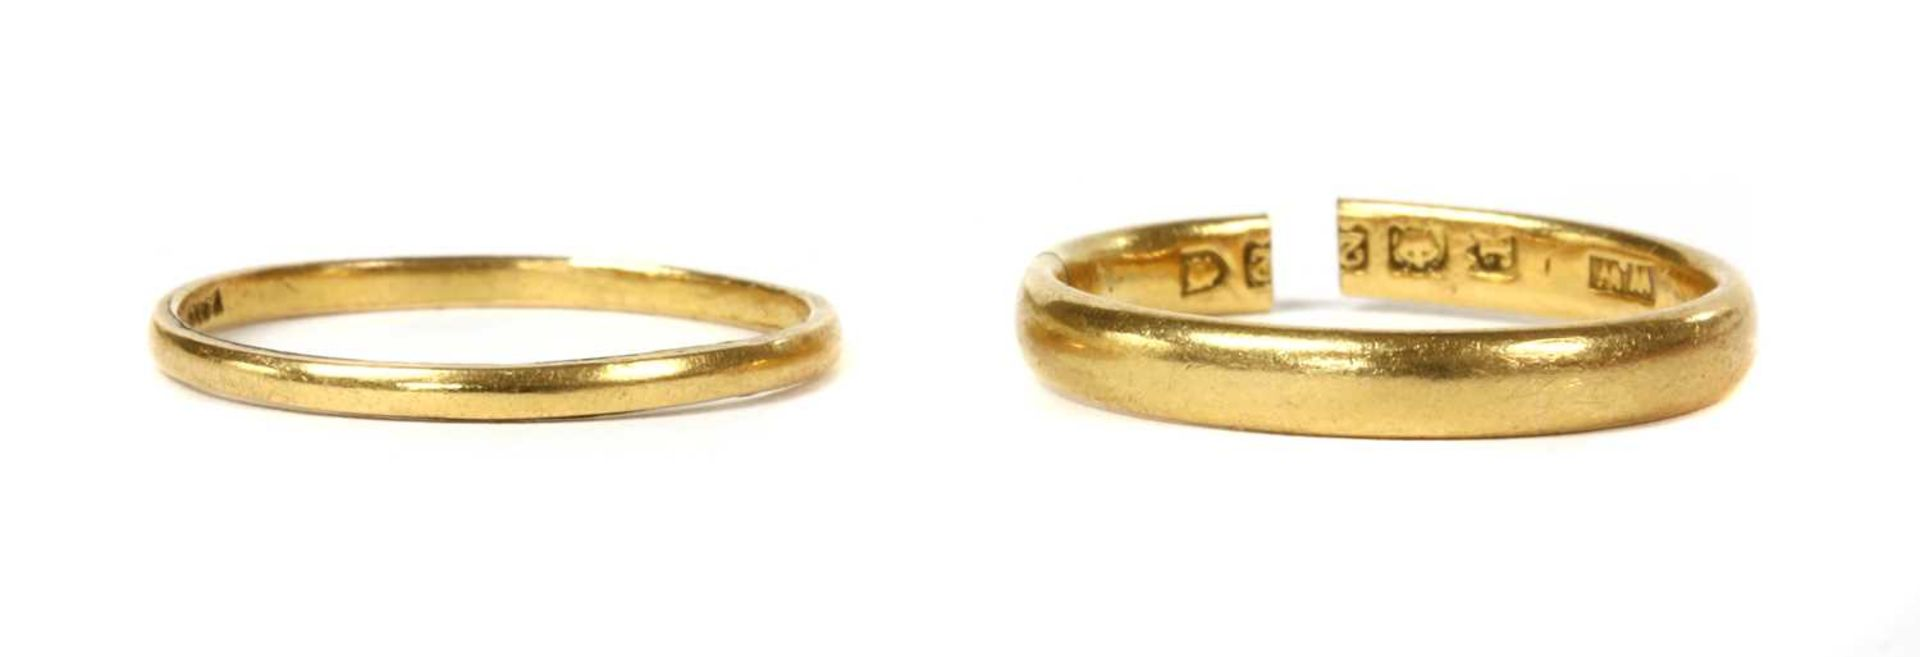 A 22ct gold 'D' section wedding ring,